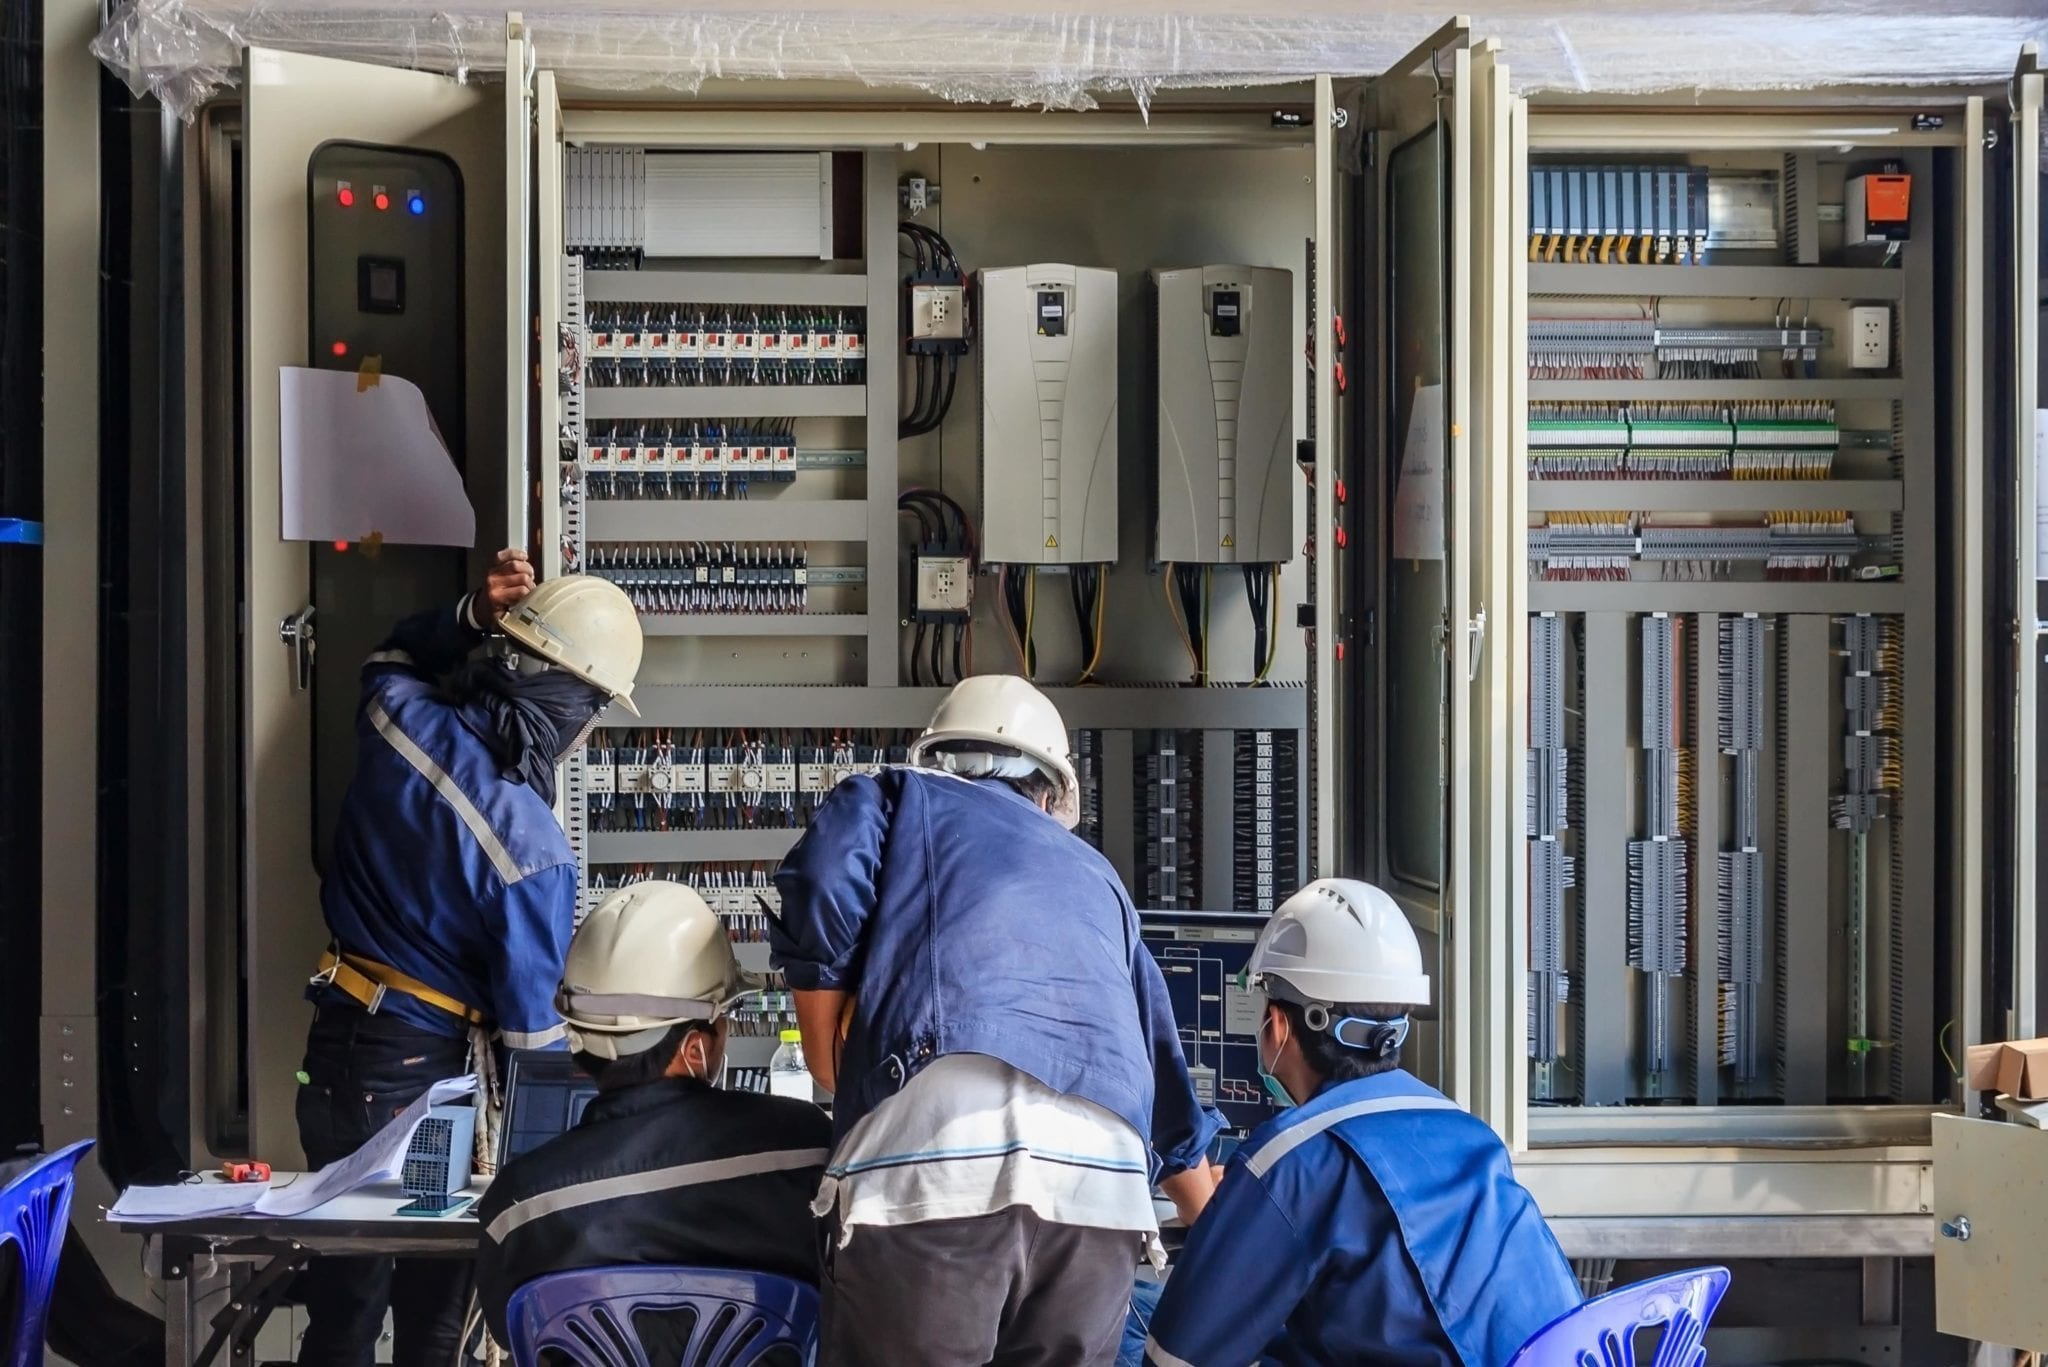 Energy Efficiency Experts inspecting an industrial electrical panel